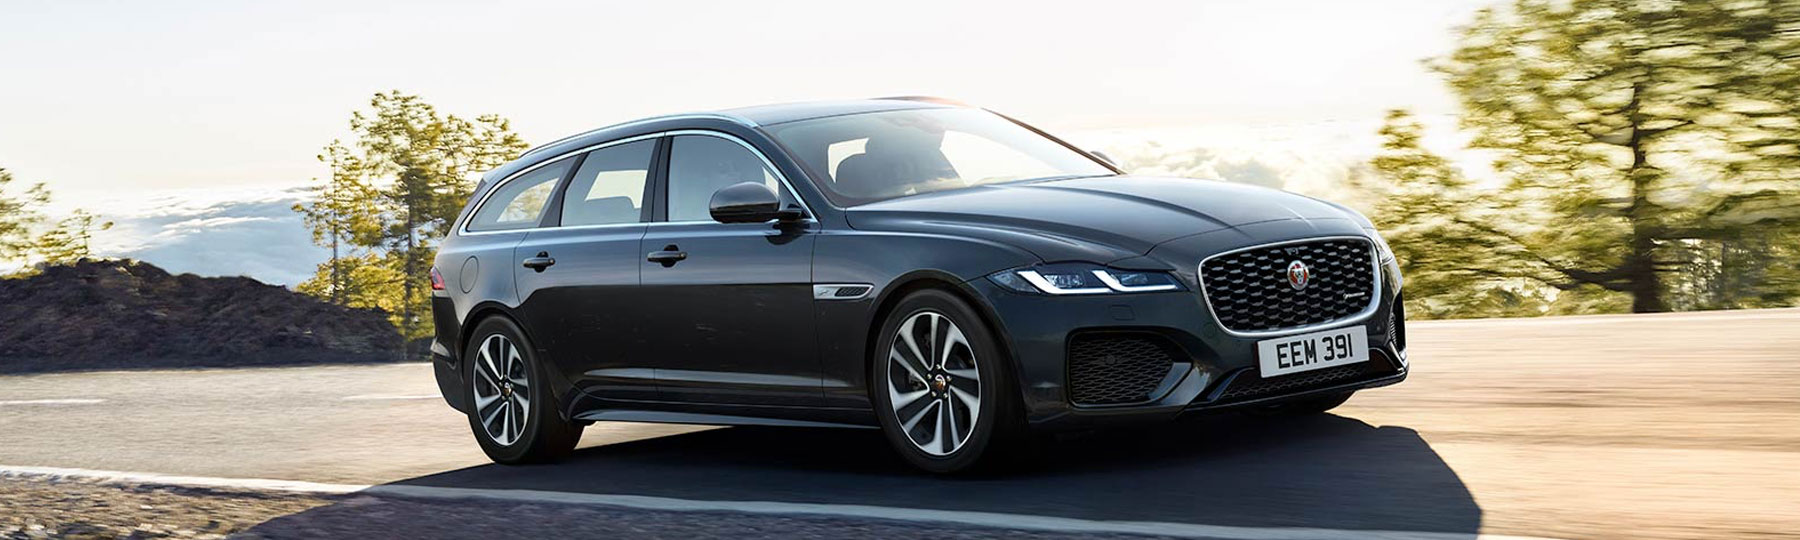 New Jaguar XF Sportbrake Personal Contract Hire Offer